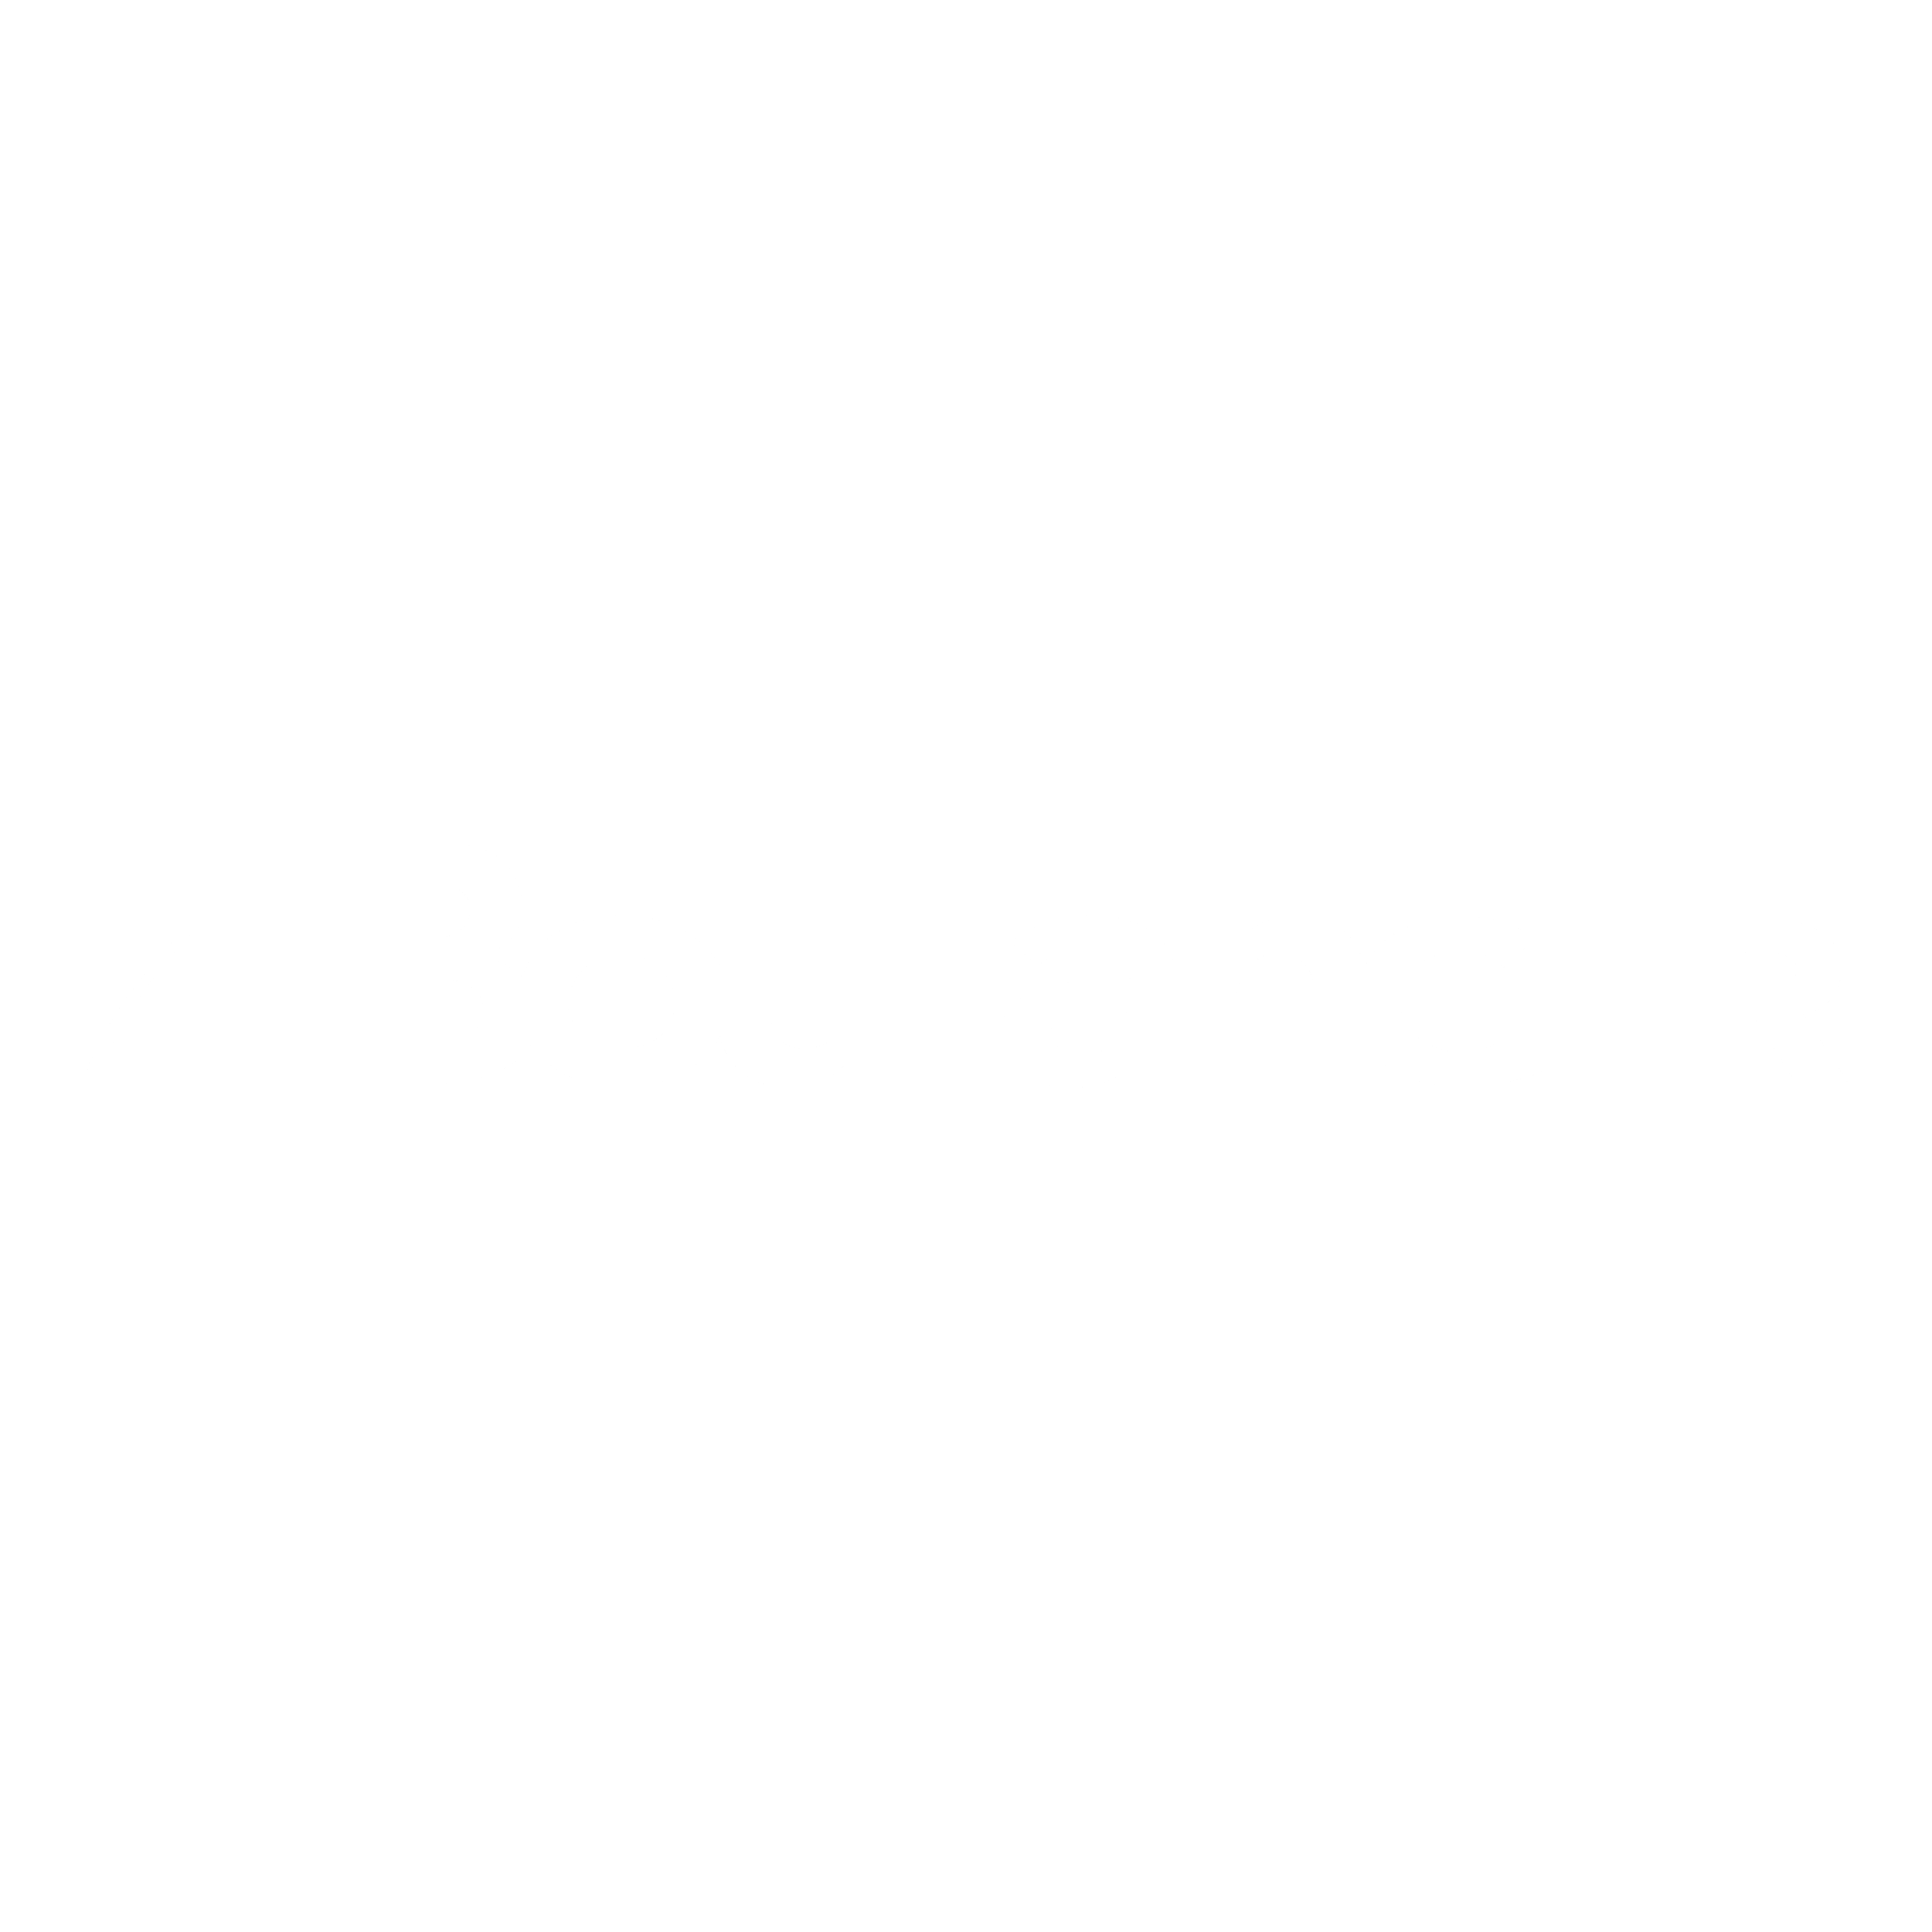 Boulanger 01 Logo PNG Transparent & SVG Vector.